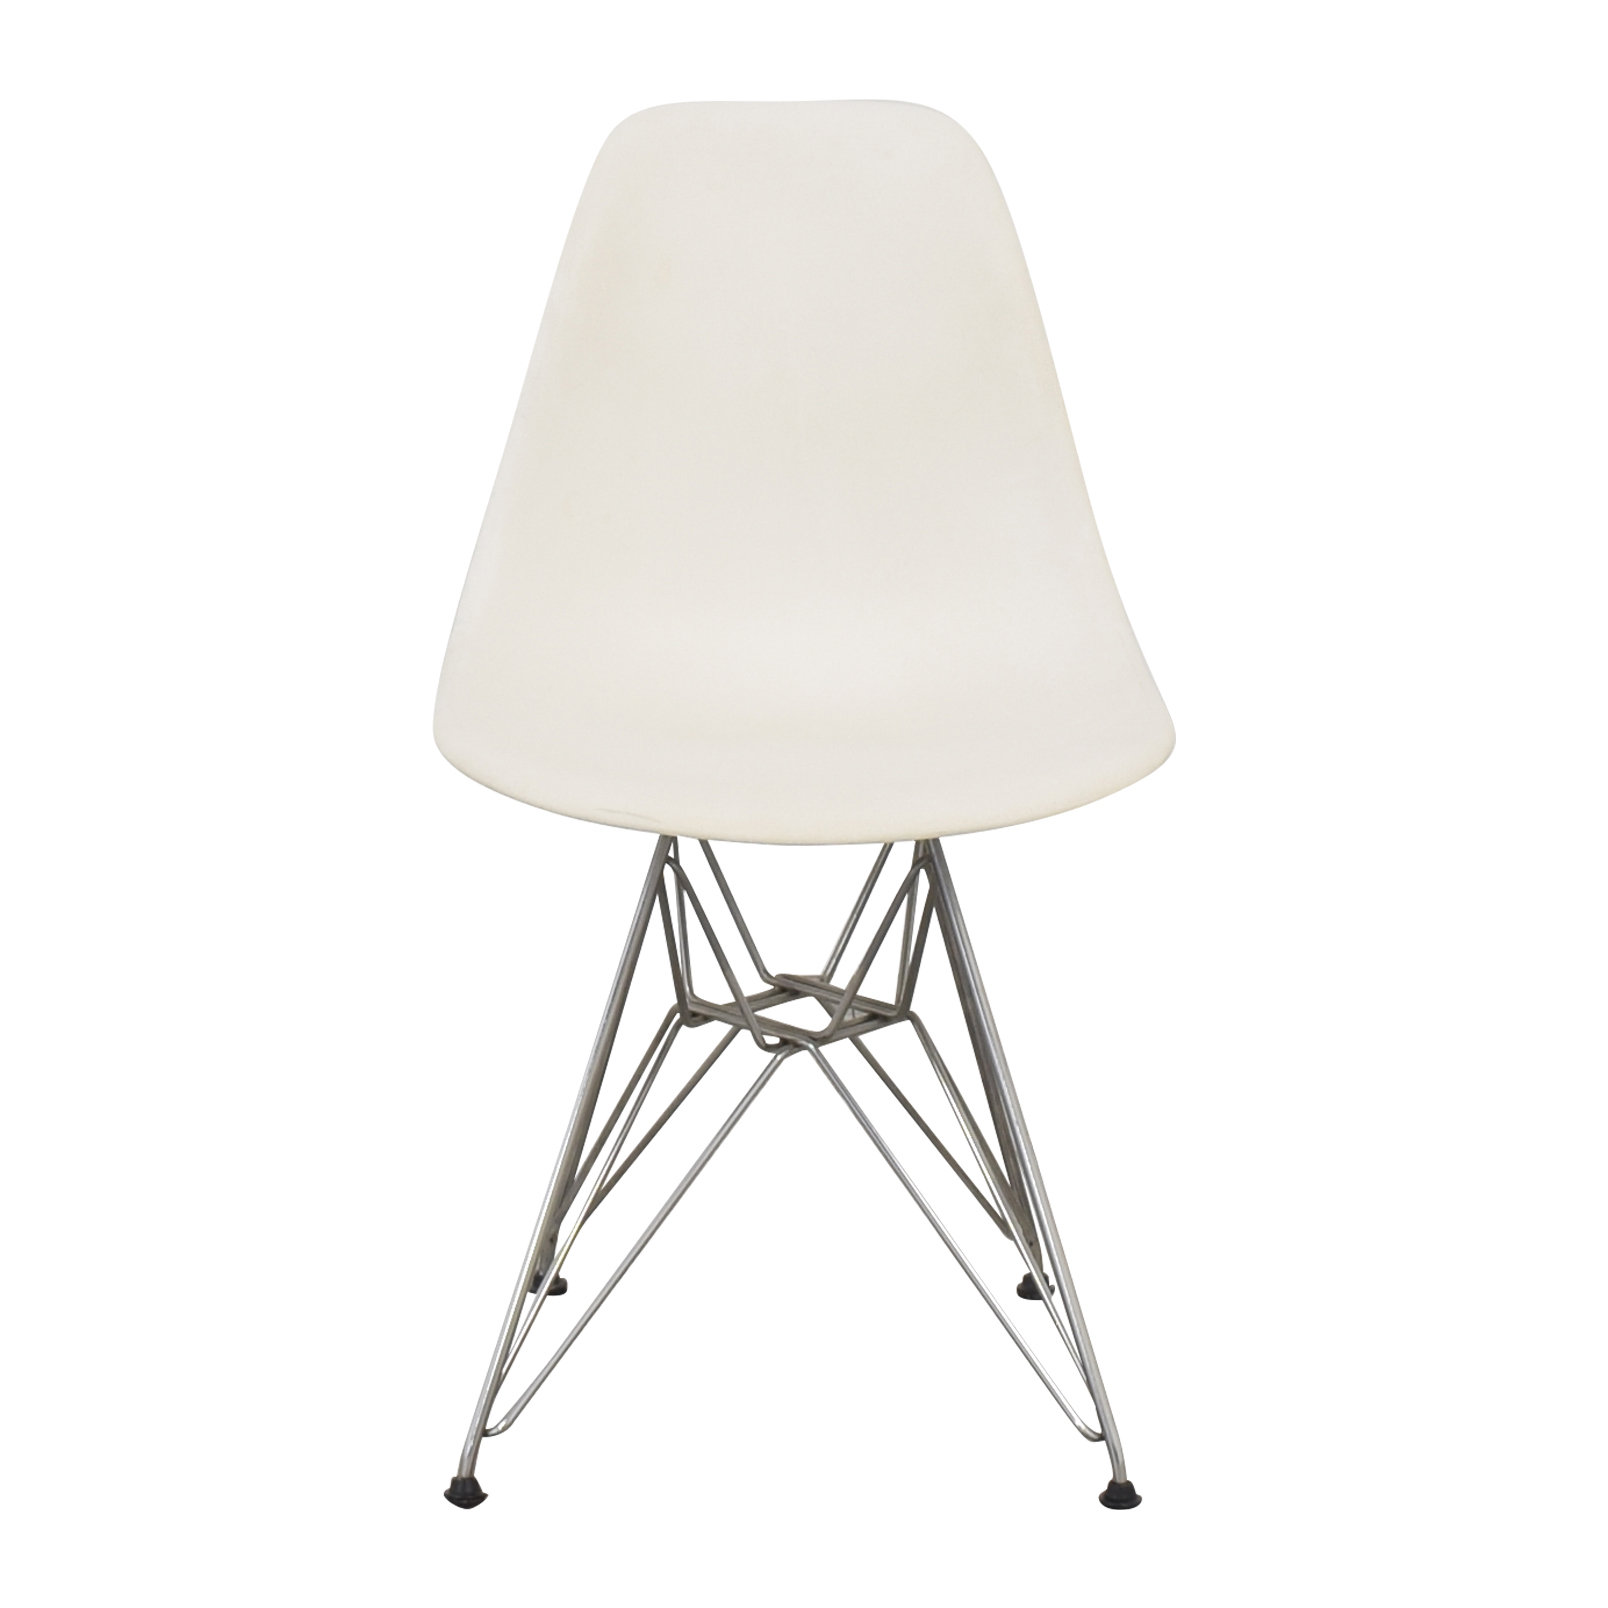 Herman Miller Herman Miller Eames Molded Plastic Dining Chair with Wire Base